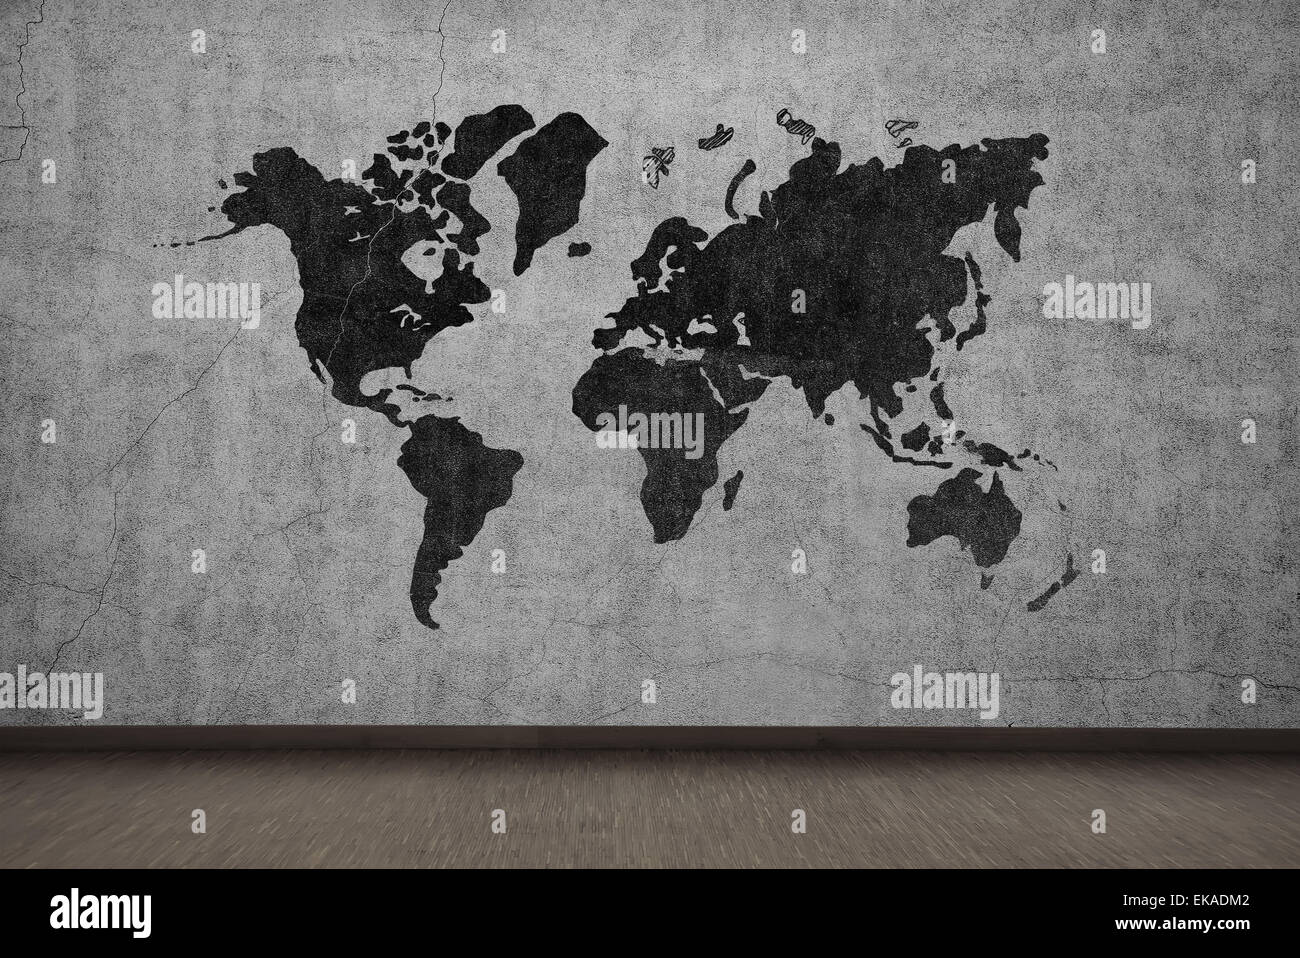 Drawing world map on gray concrete wall stock photo 80750210 alamy drawing world map on gray concrete wall gumiabroncs Images